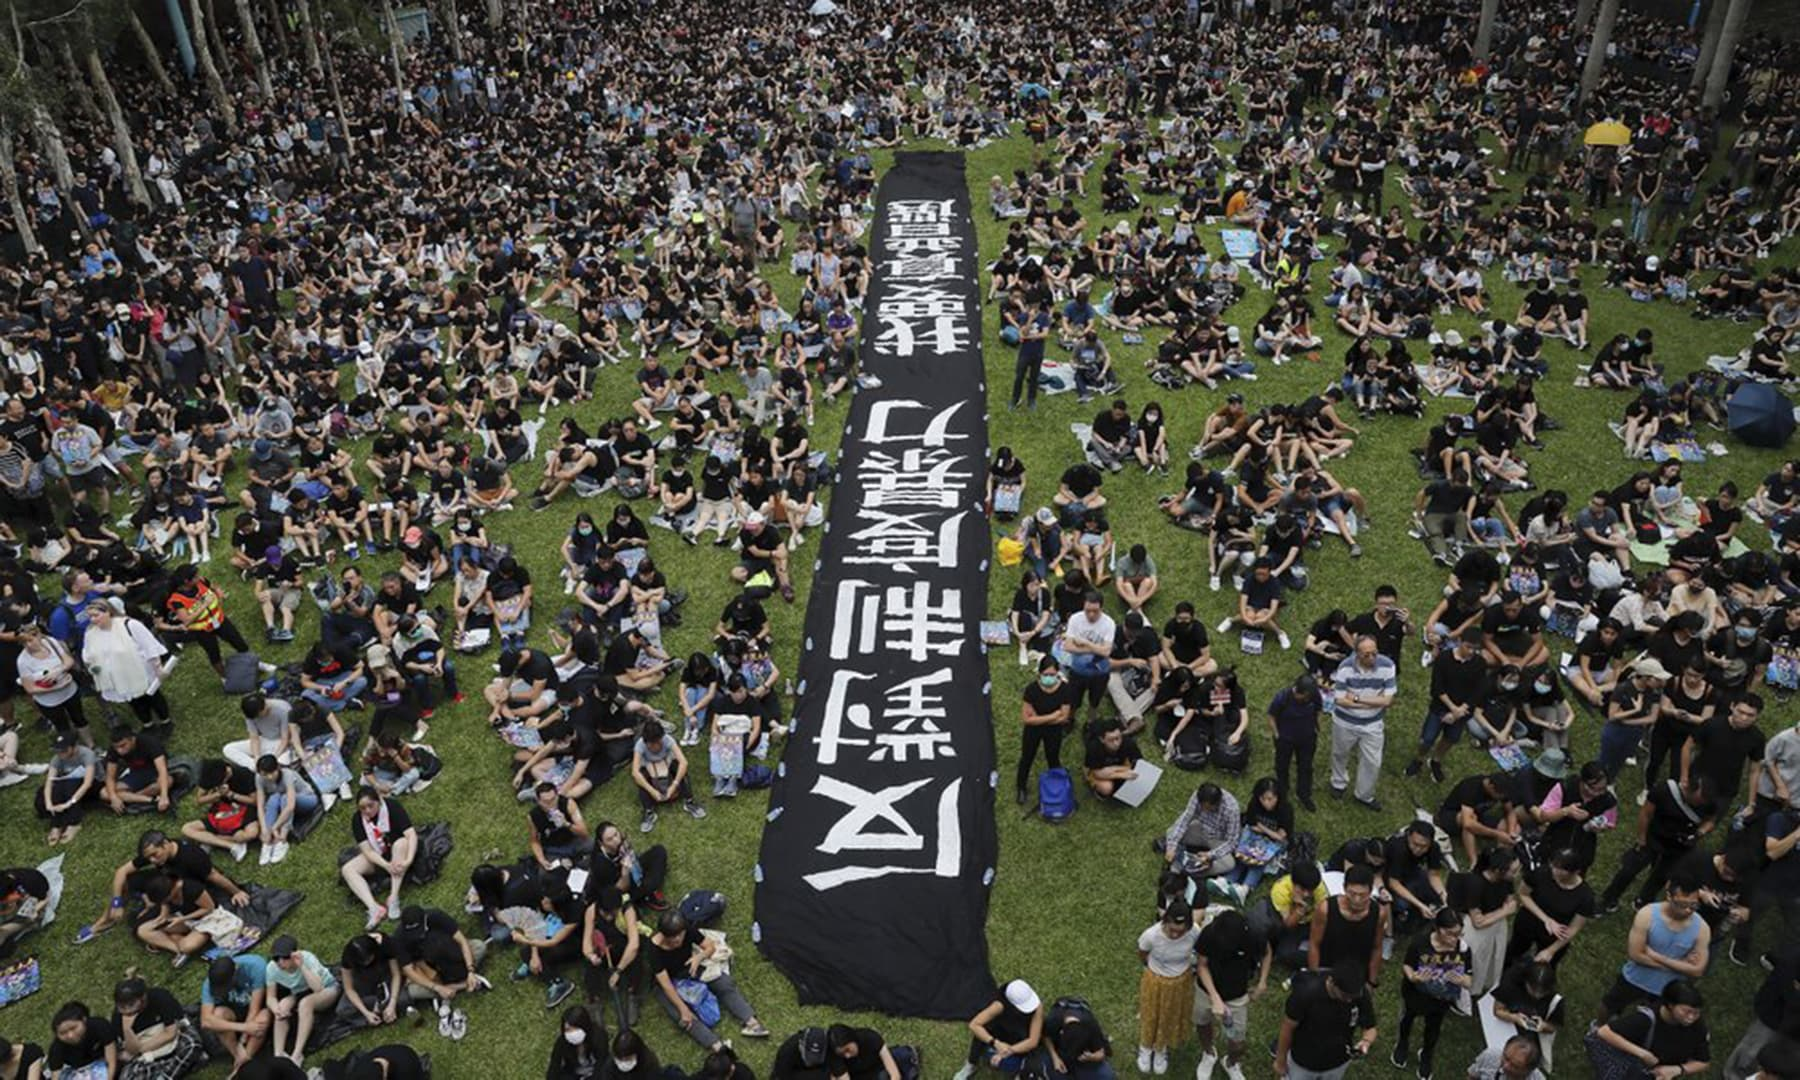 In this Aug 4, 2019, photo, people gather at Belcher Bay Park as they take part in an anti-extradition bill protest in Western district in Hong Kong. — AP